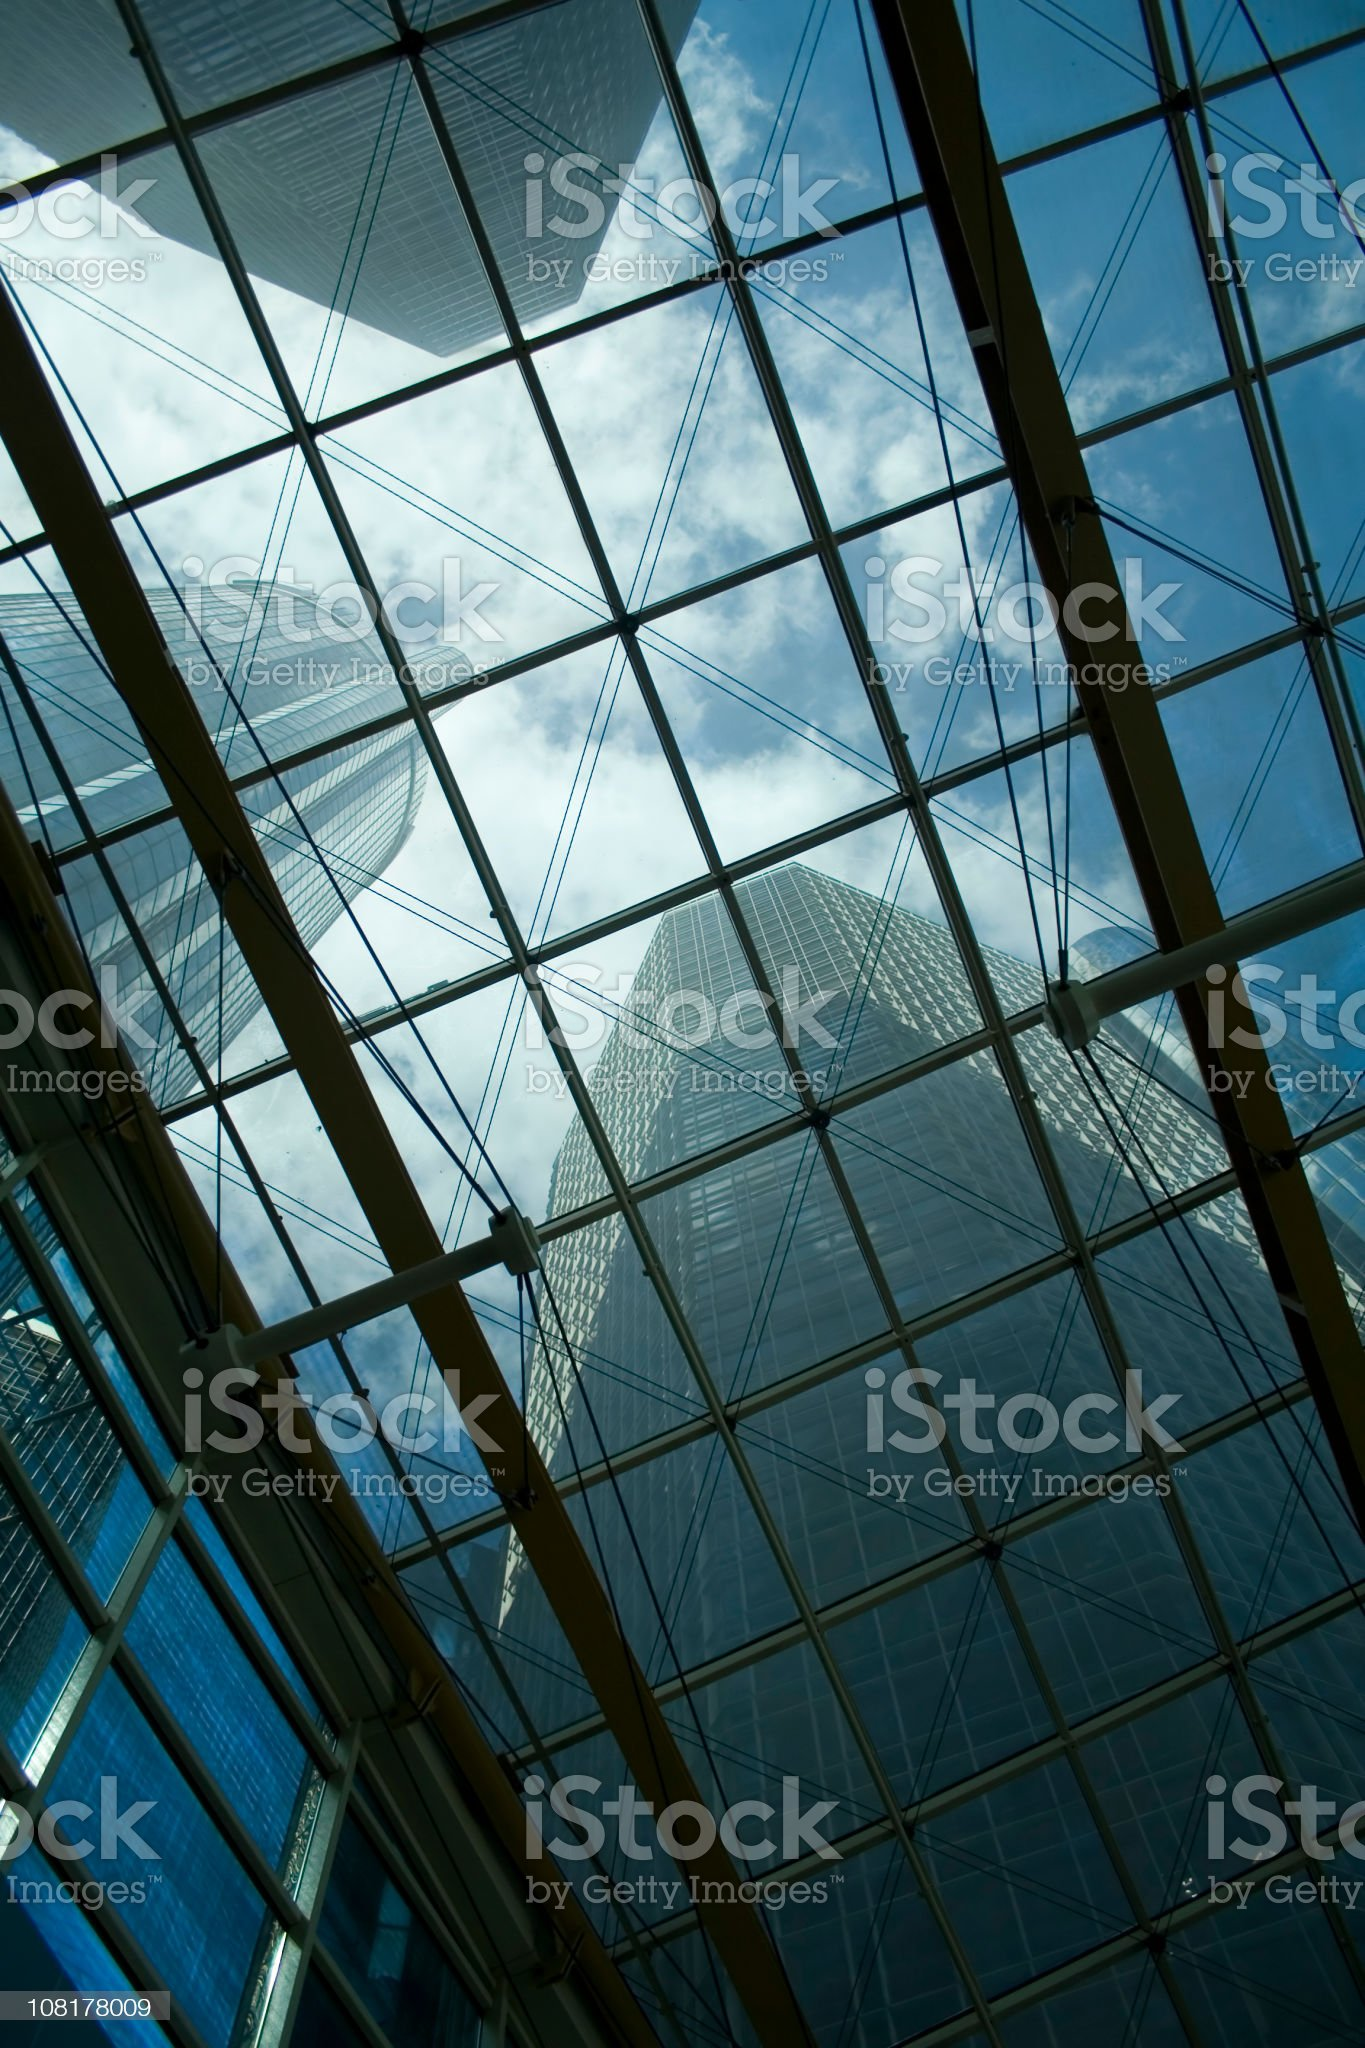 Looking Up at Office Buildings Through Window Roof royalty-free stock photo